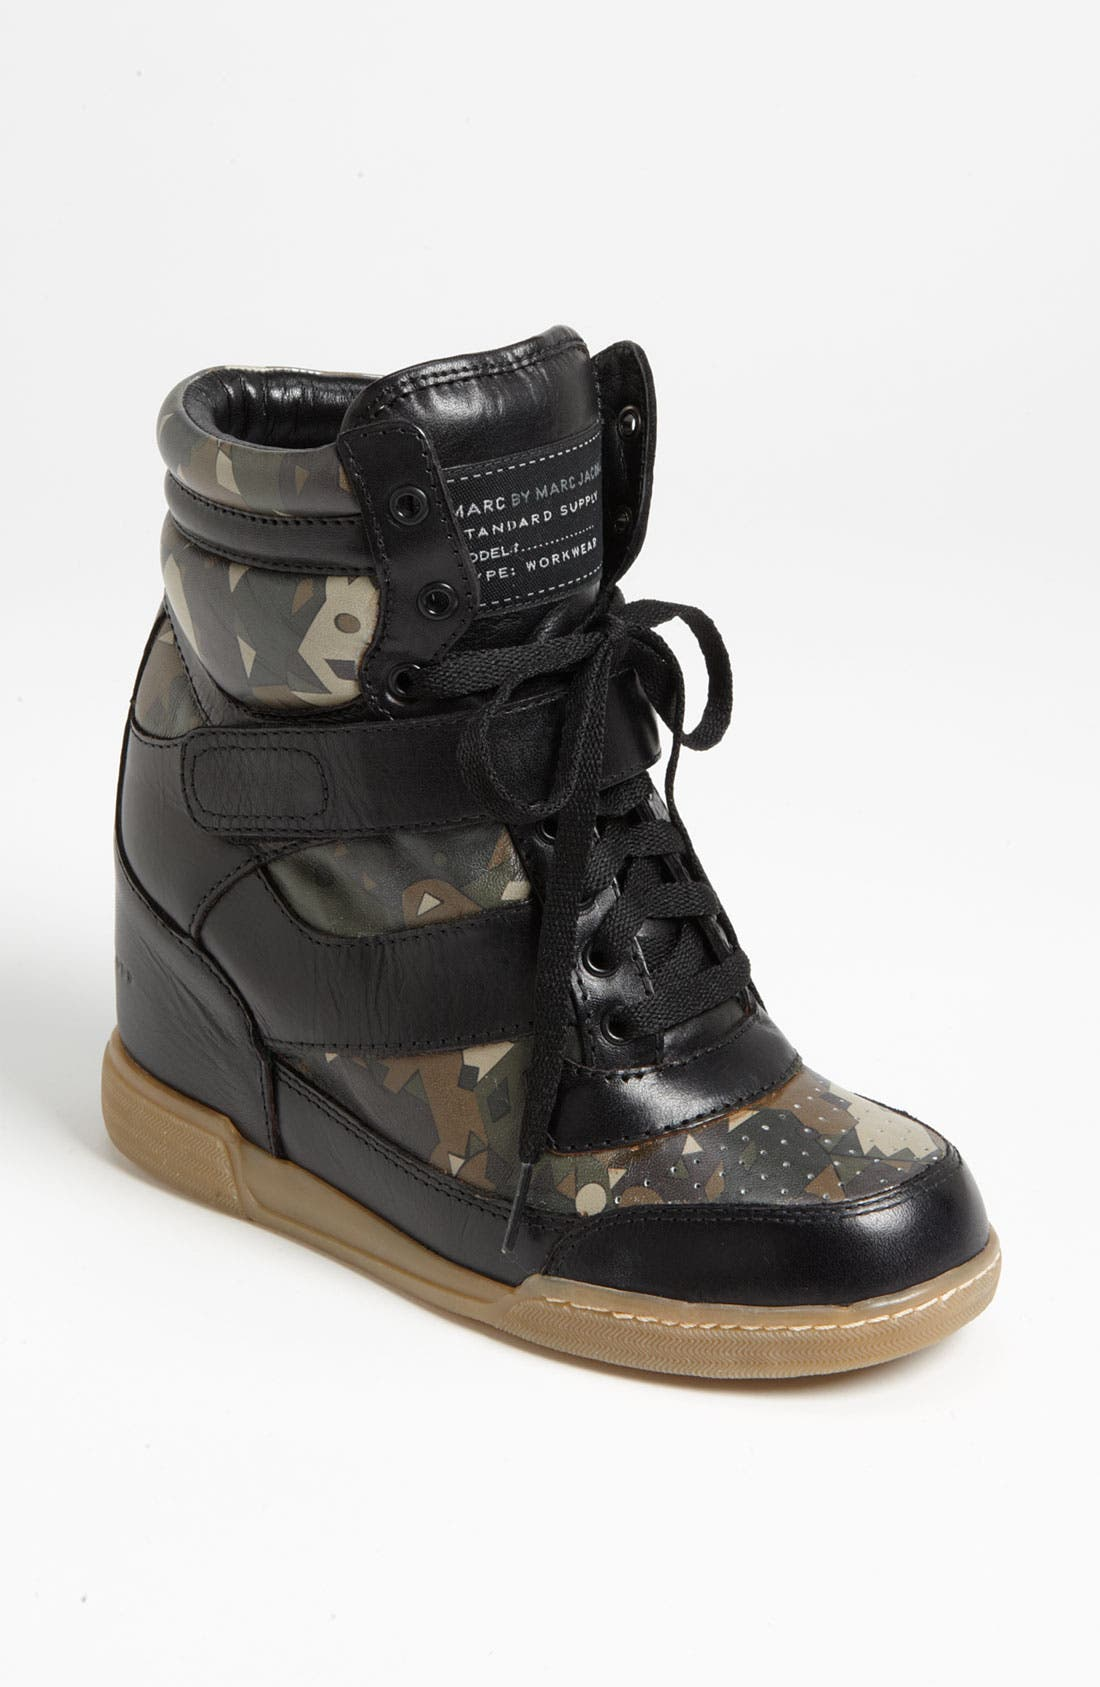 MARC BY MARC JACOBS High Top Wedge Sneaker